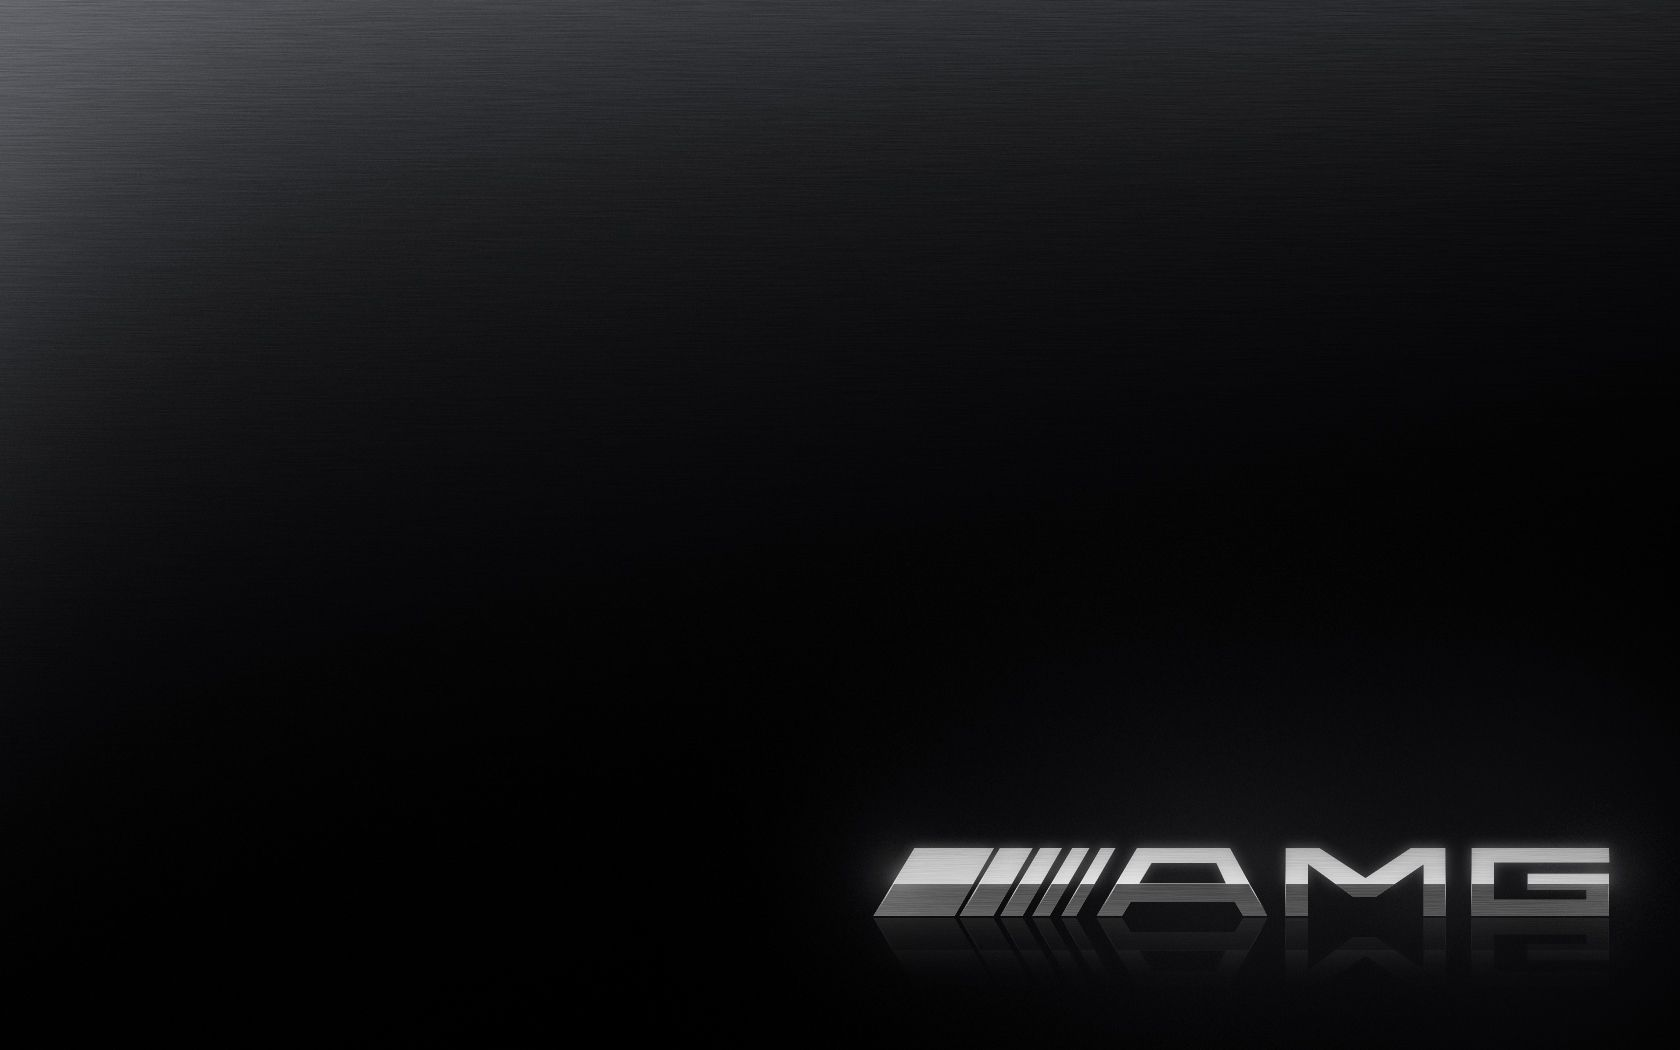 Mercedes AMG Wallpapers - Wallpaper Cave